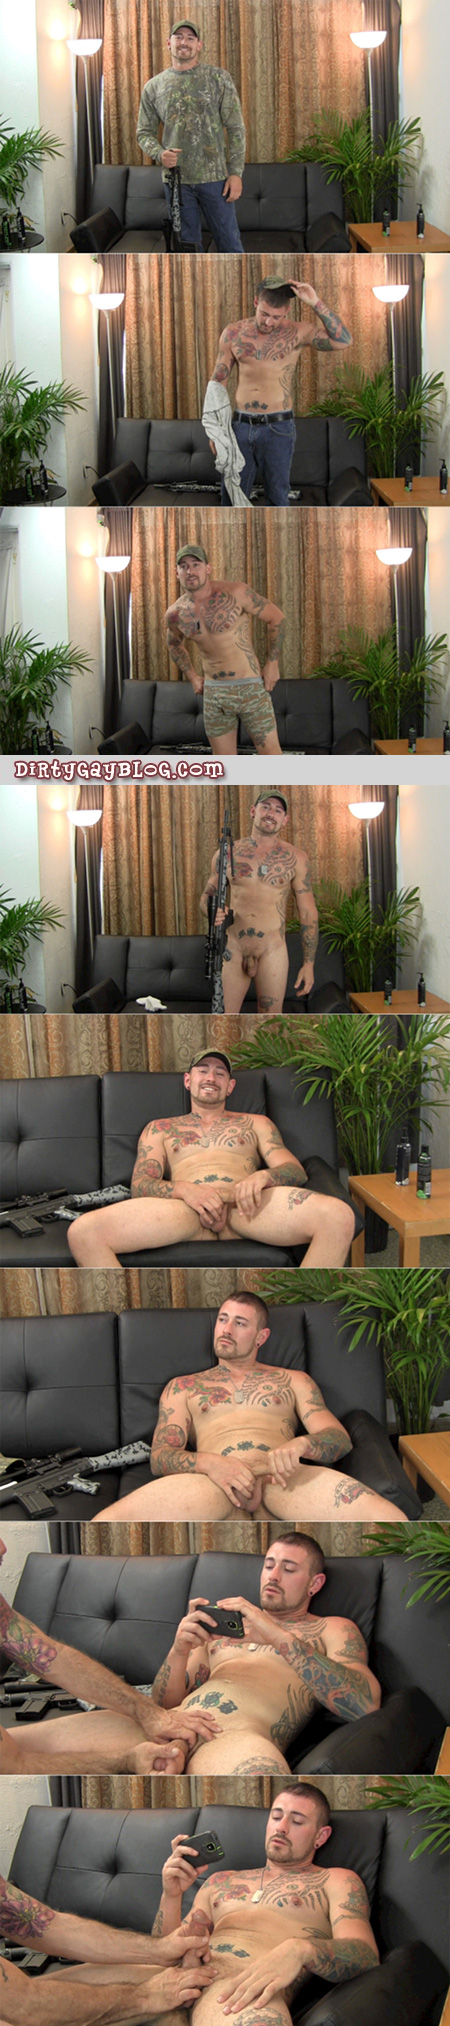 Straight tattooed hunk gets groped while he masturbates.